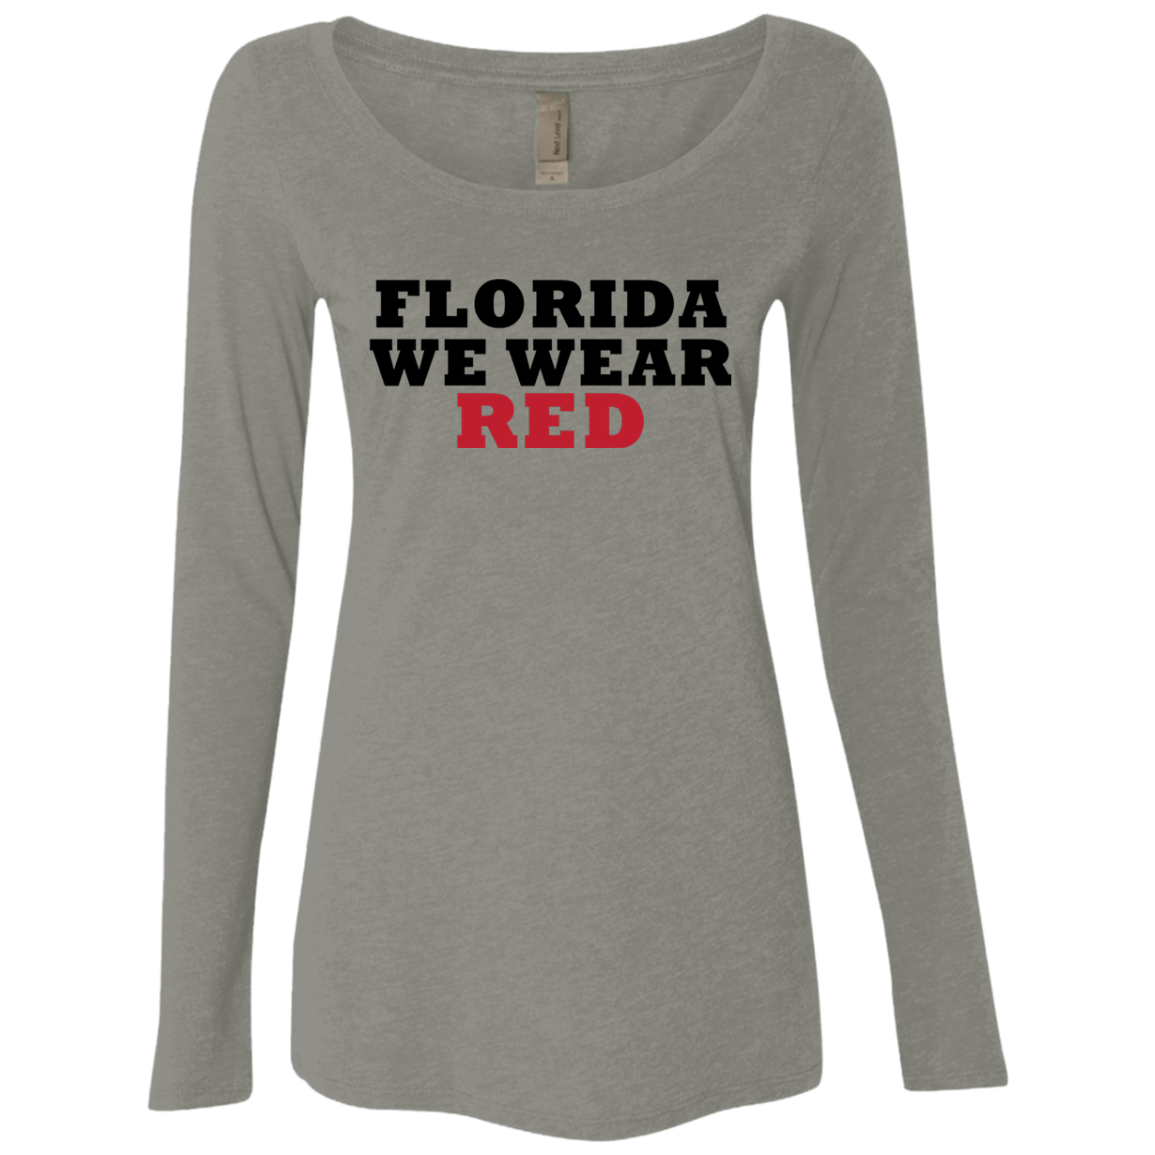 Florida We Wear Red Women's Long Sleeve Tee